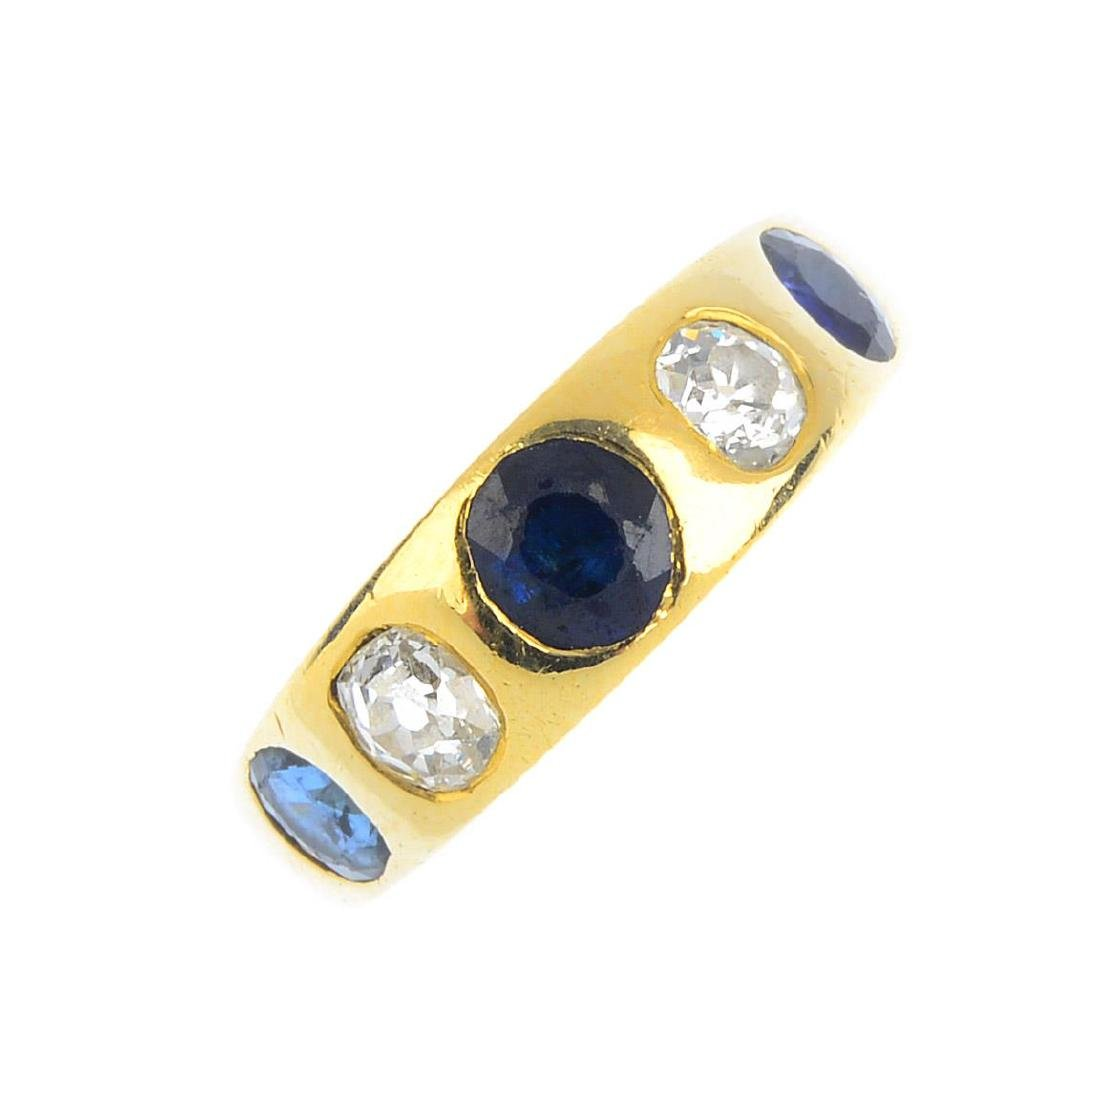 A sapphire and diamond five-stone ring. The alternating